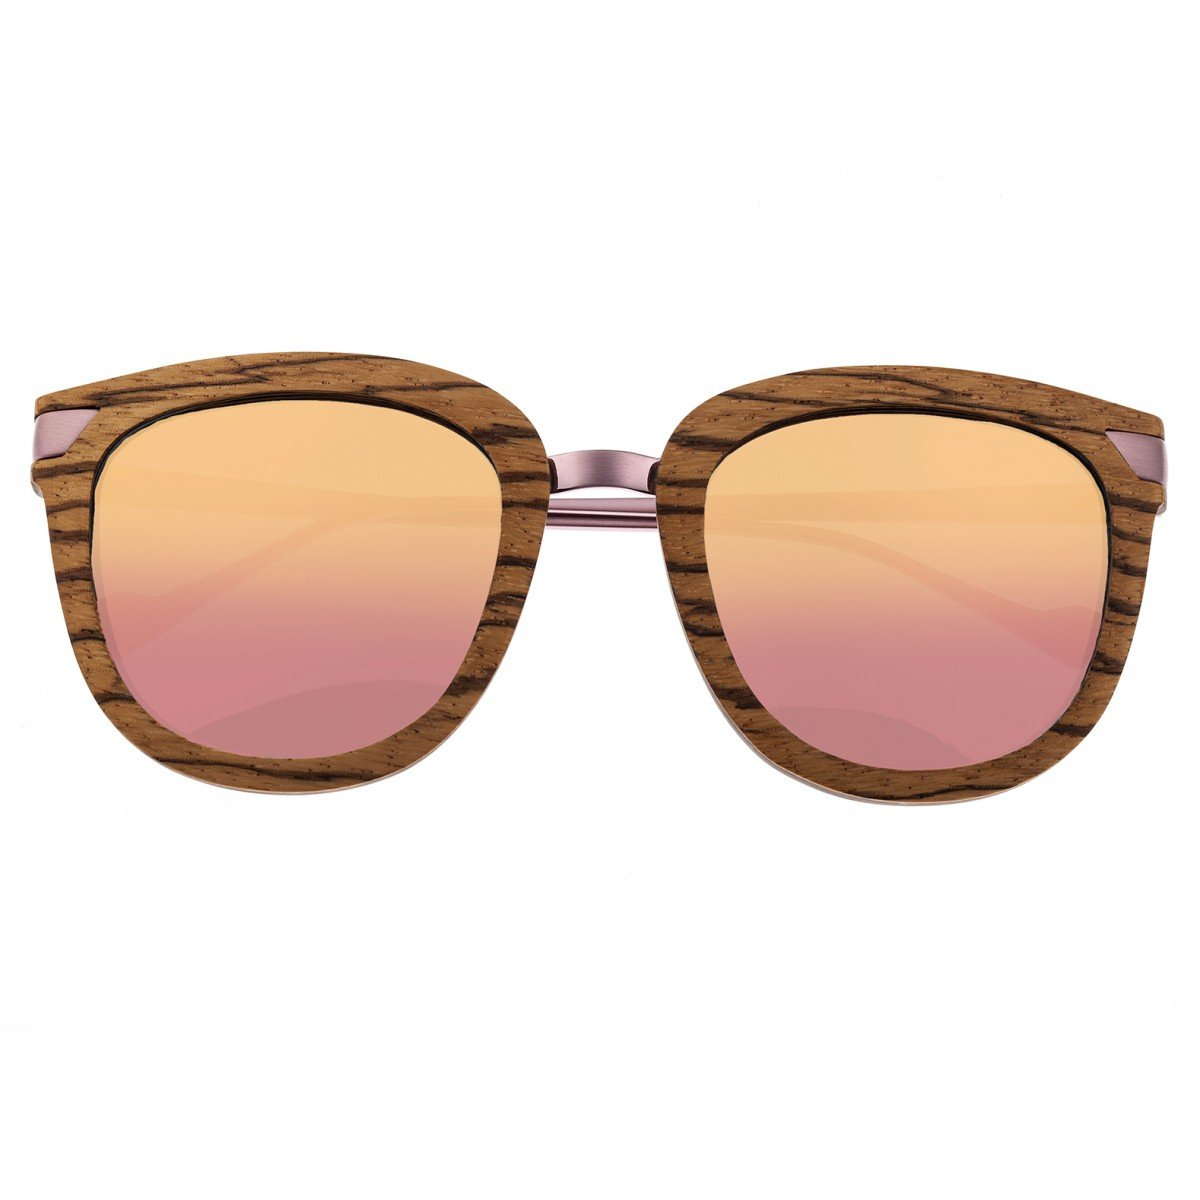 b7325fbe33 Earth Wood Nissi Sunglasses w Polarized Lenses - Zebrawood Rose Gold - Earth  Wood Goods - Wood Watches